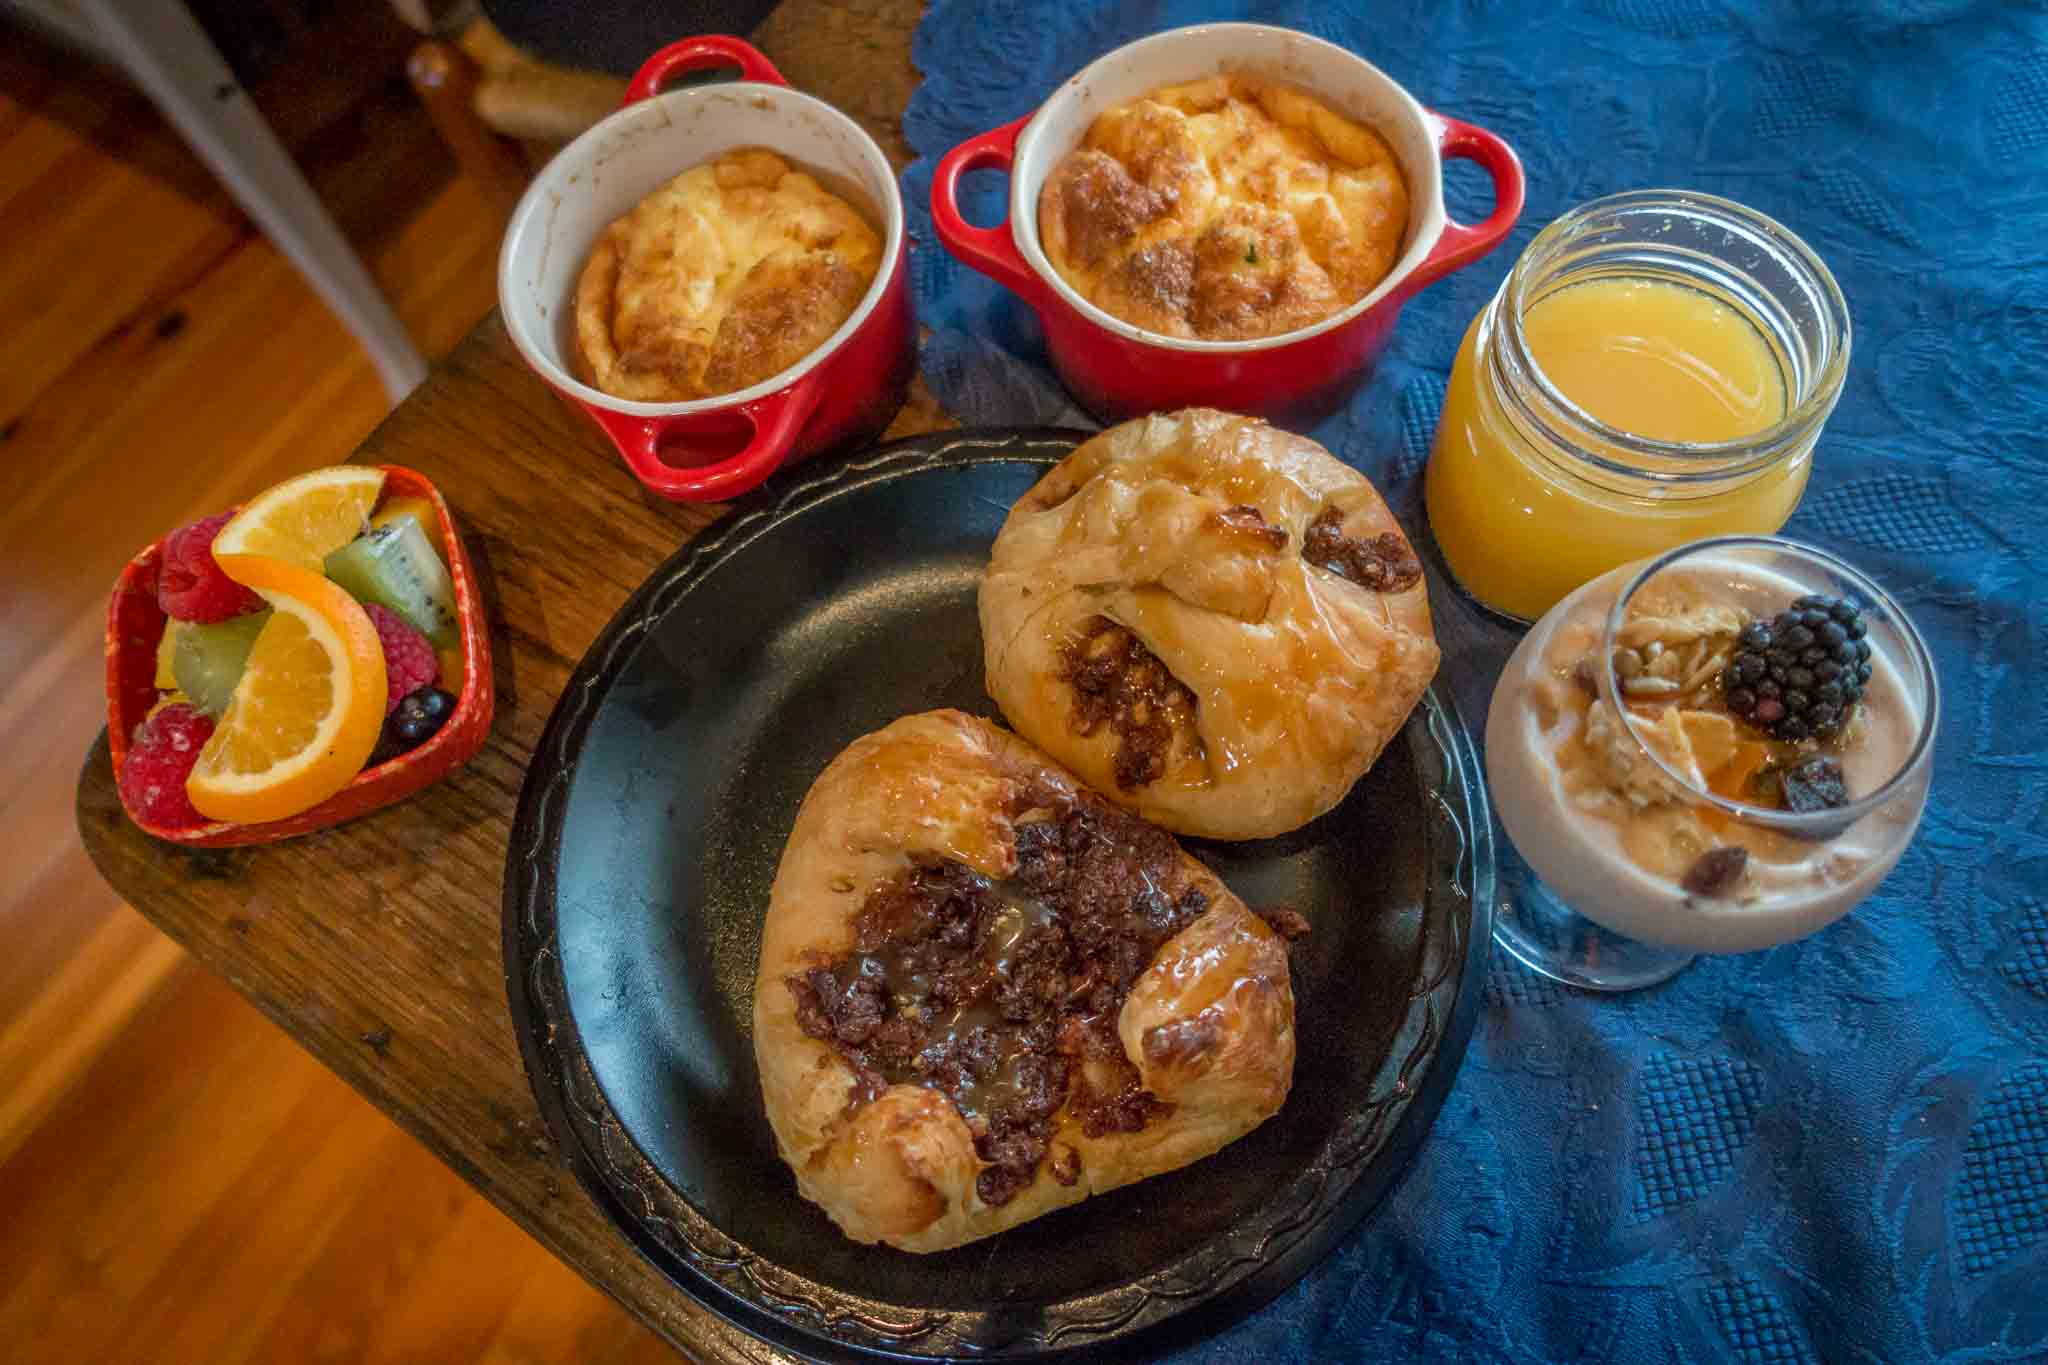 Souffles and pastries for breakfast at a B&B in Fredericksburg, Texas